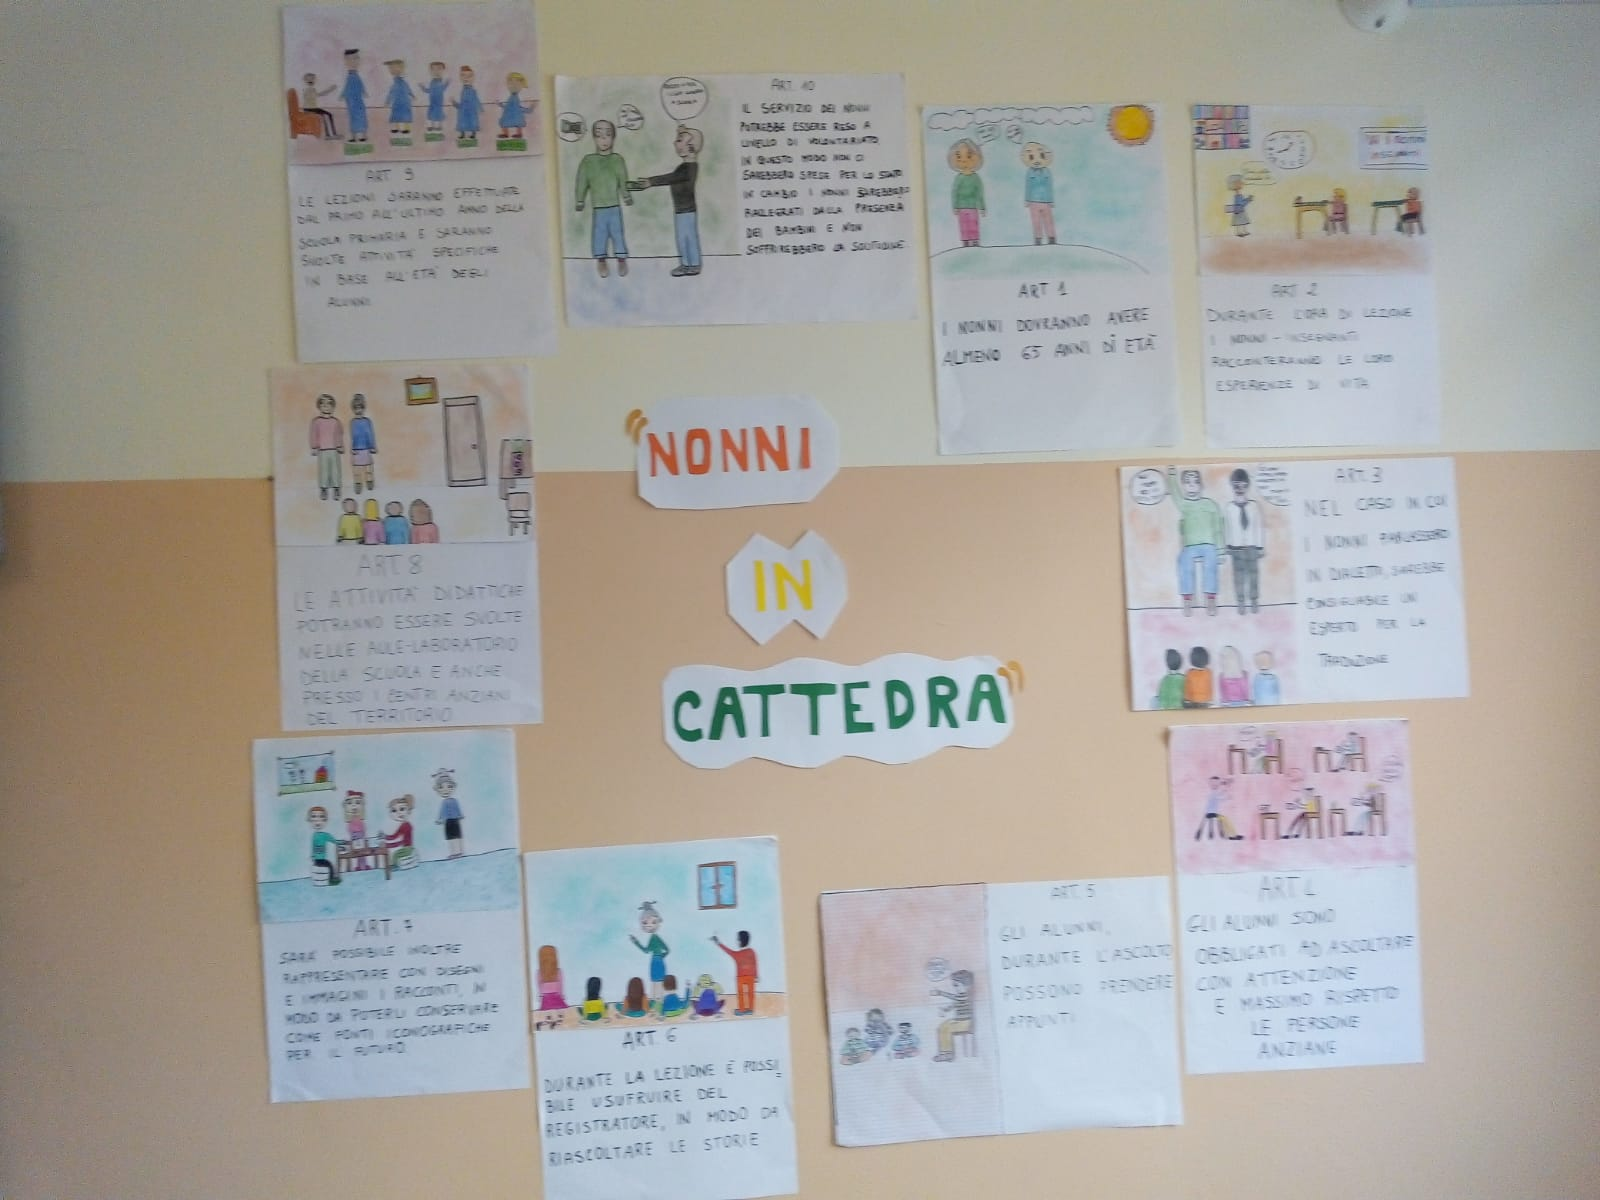 Nonni in cattedra